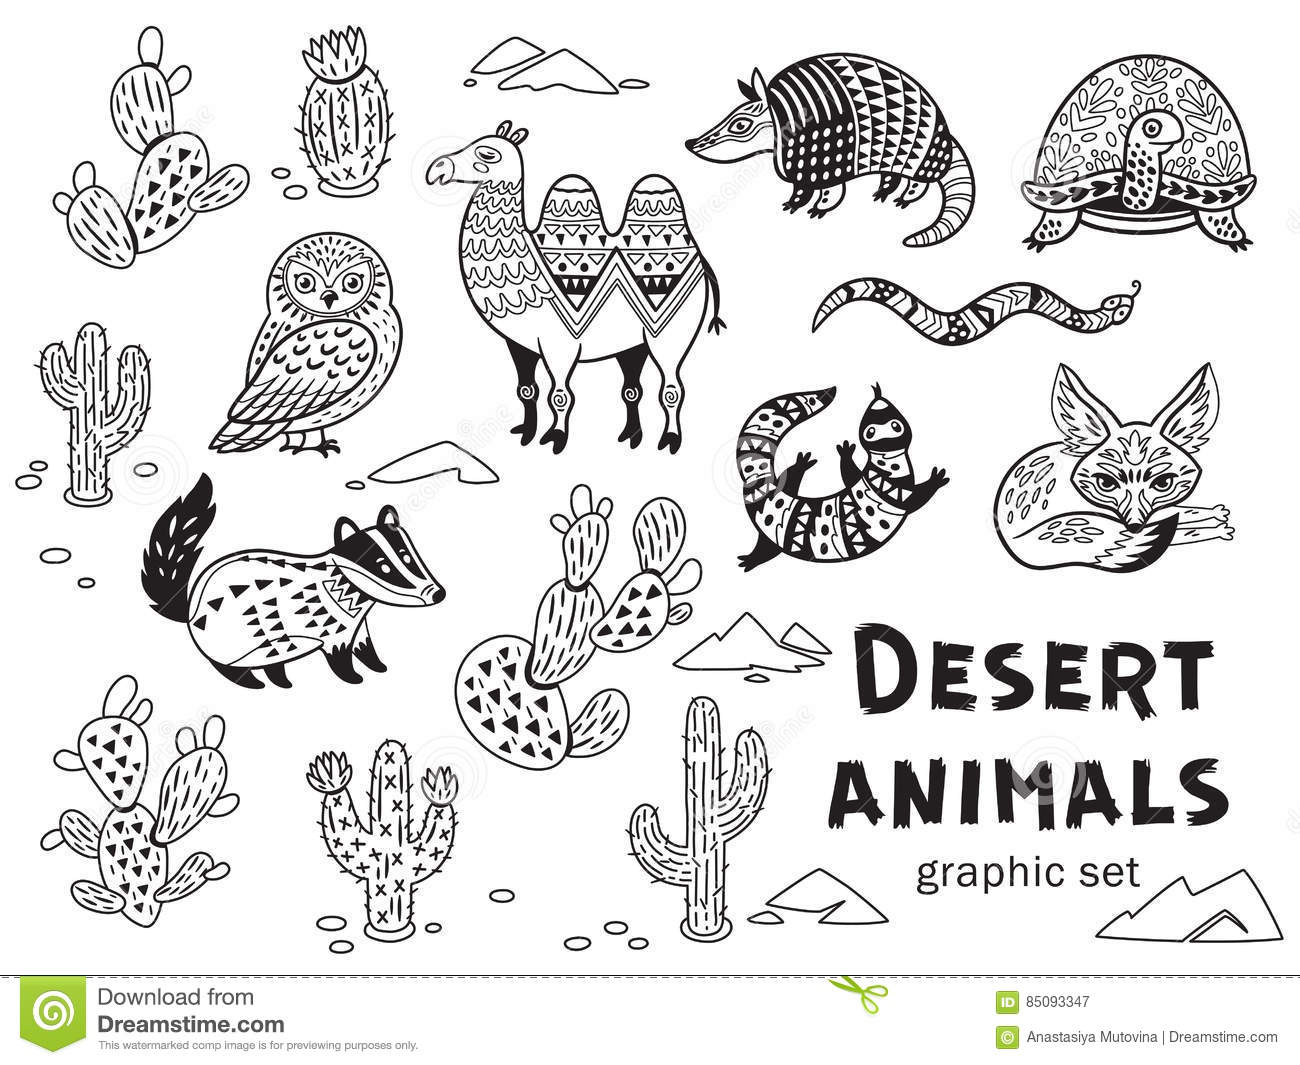 Pagine Da Colorare Per Animali Tribali: Desert Animals For Kids Coloring Page